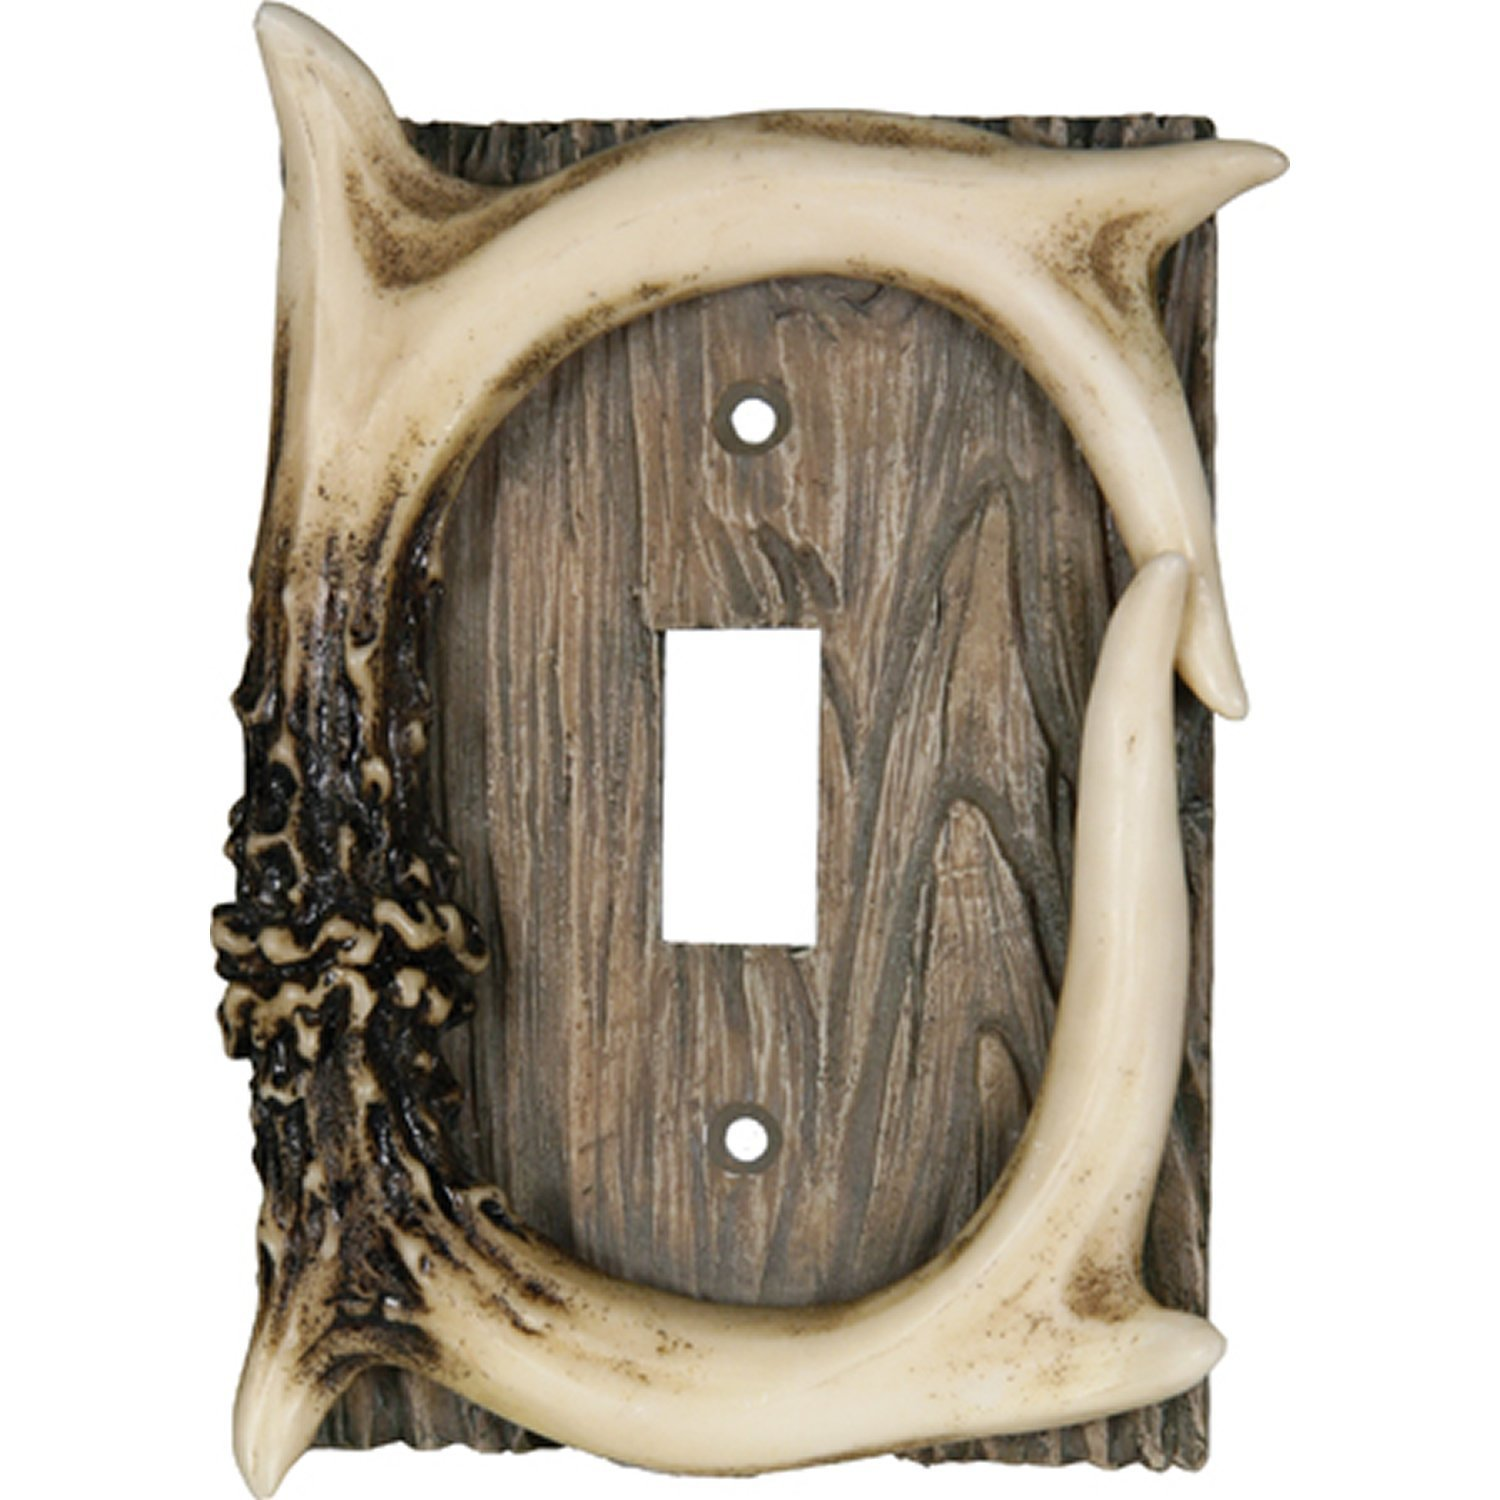 Rivers Edge Products Deer Antler Single Switch Electrical Cover Plate CVR (Pack of 5)